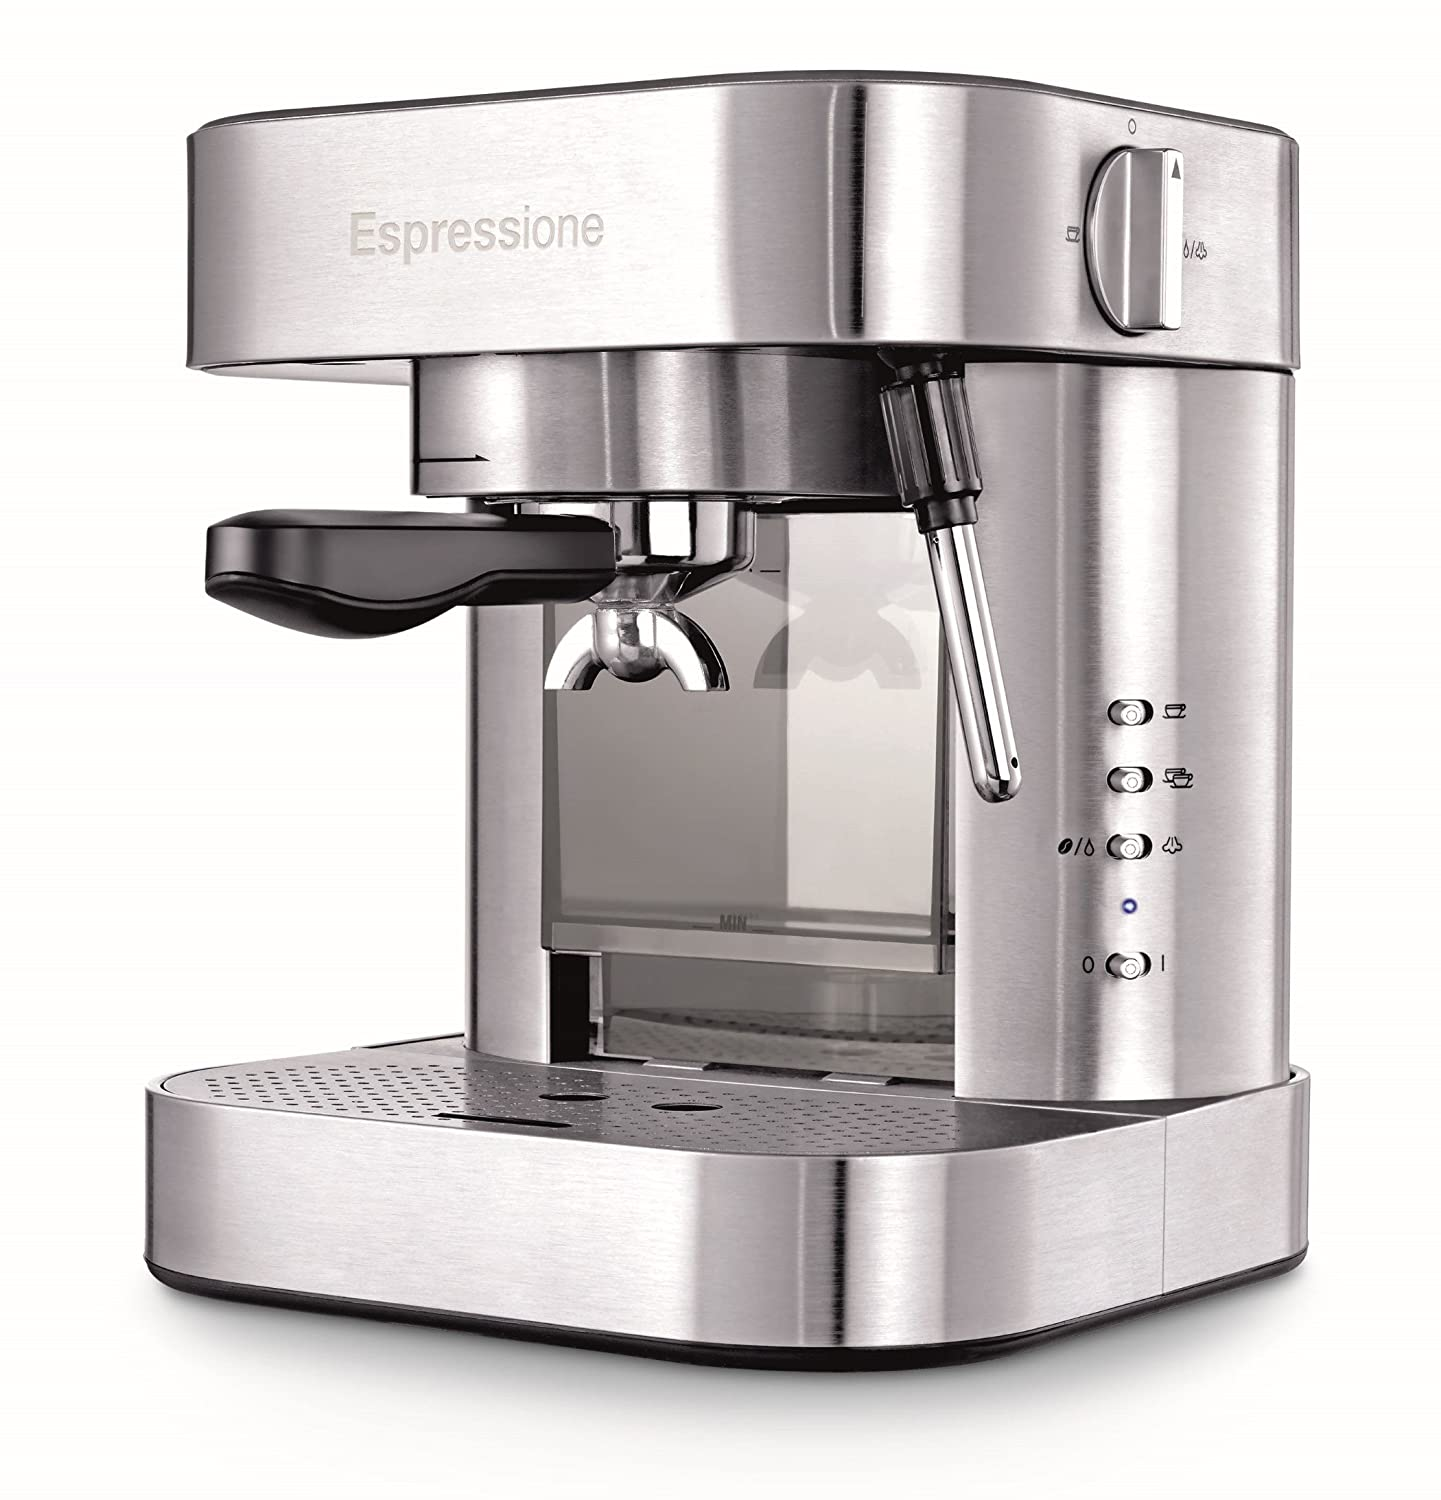 Amazon.com: Espressione EM-1020 Stainless Steel Espresso Machine 1.5 L: Kitchen & Dining